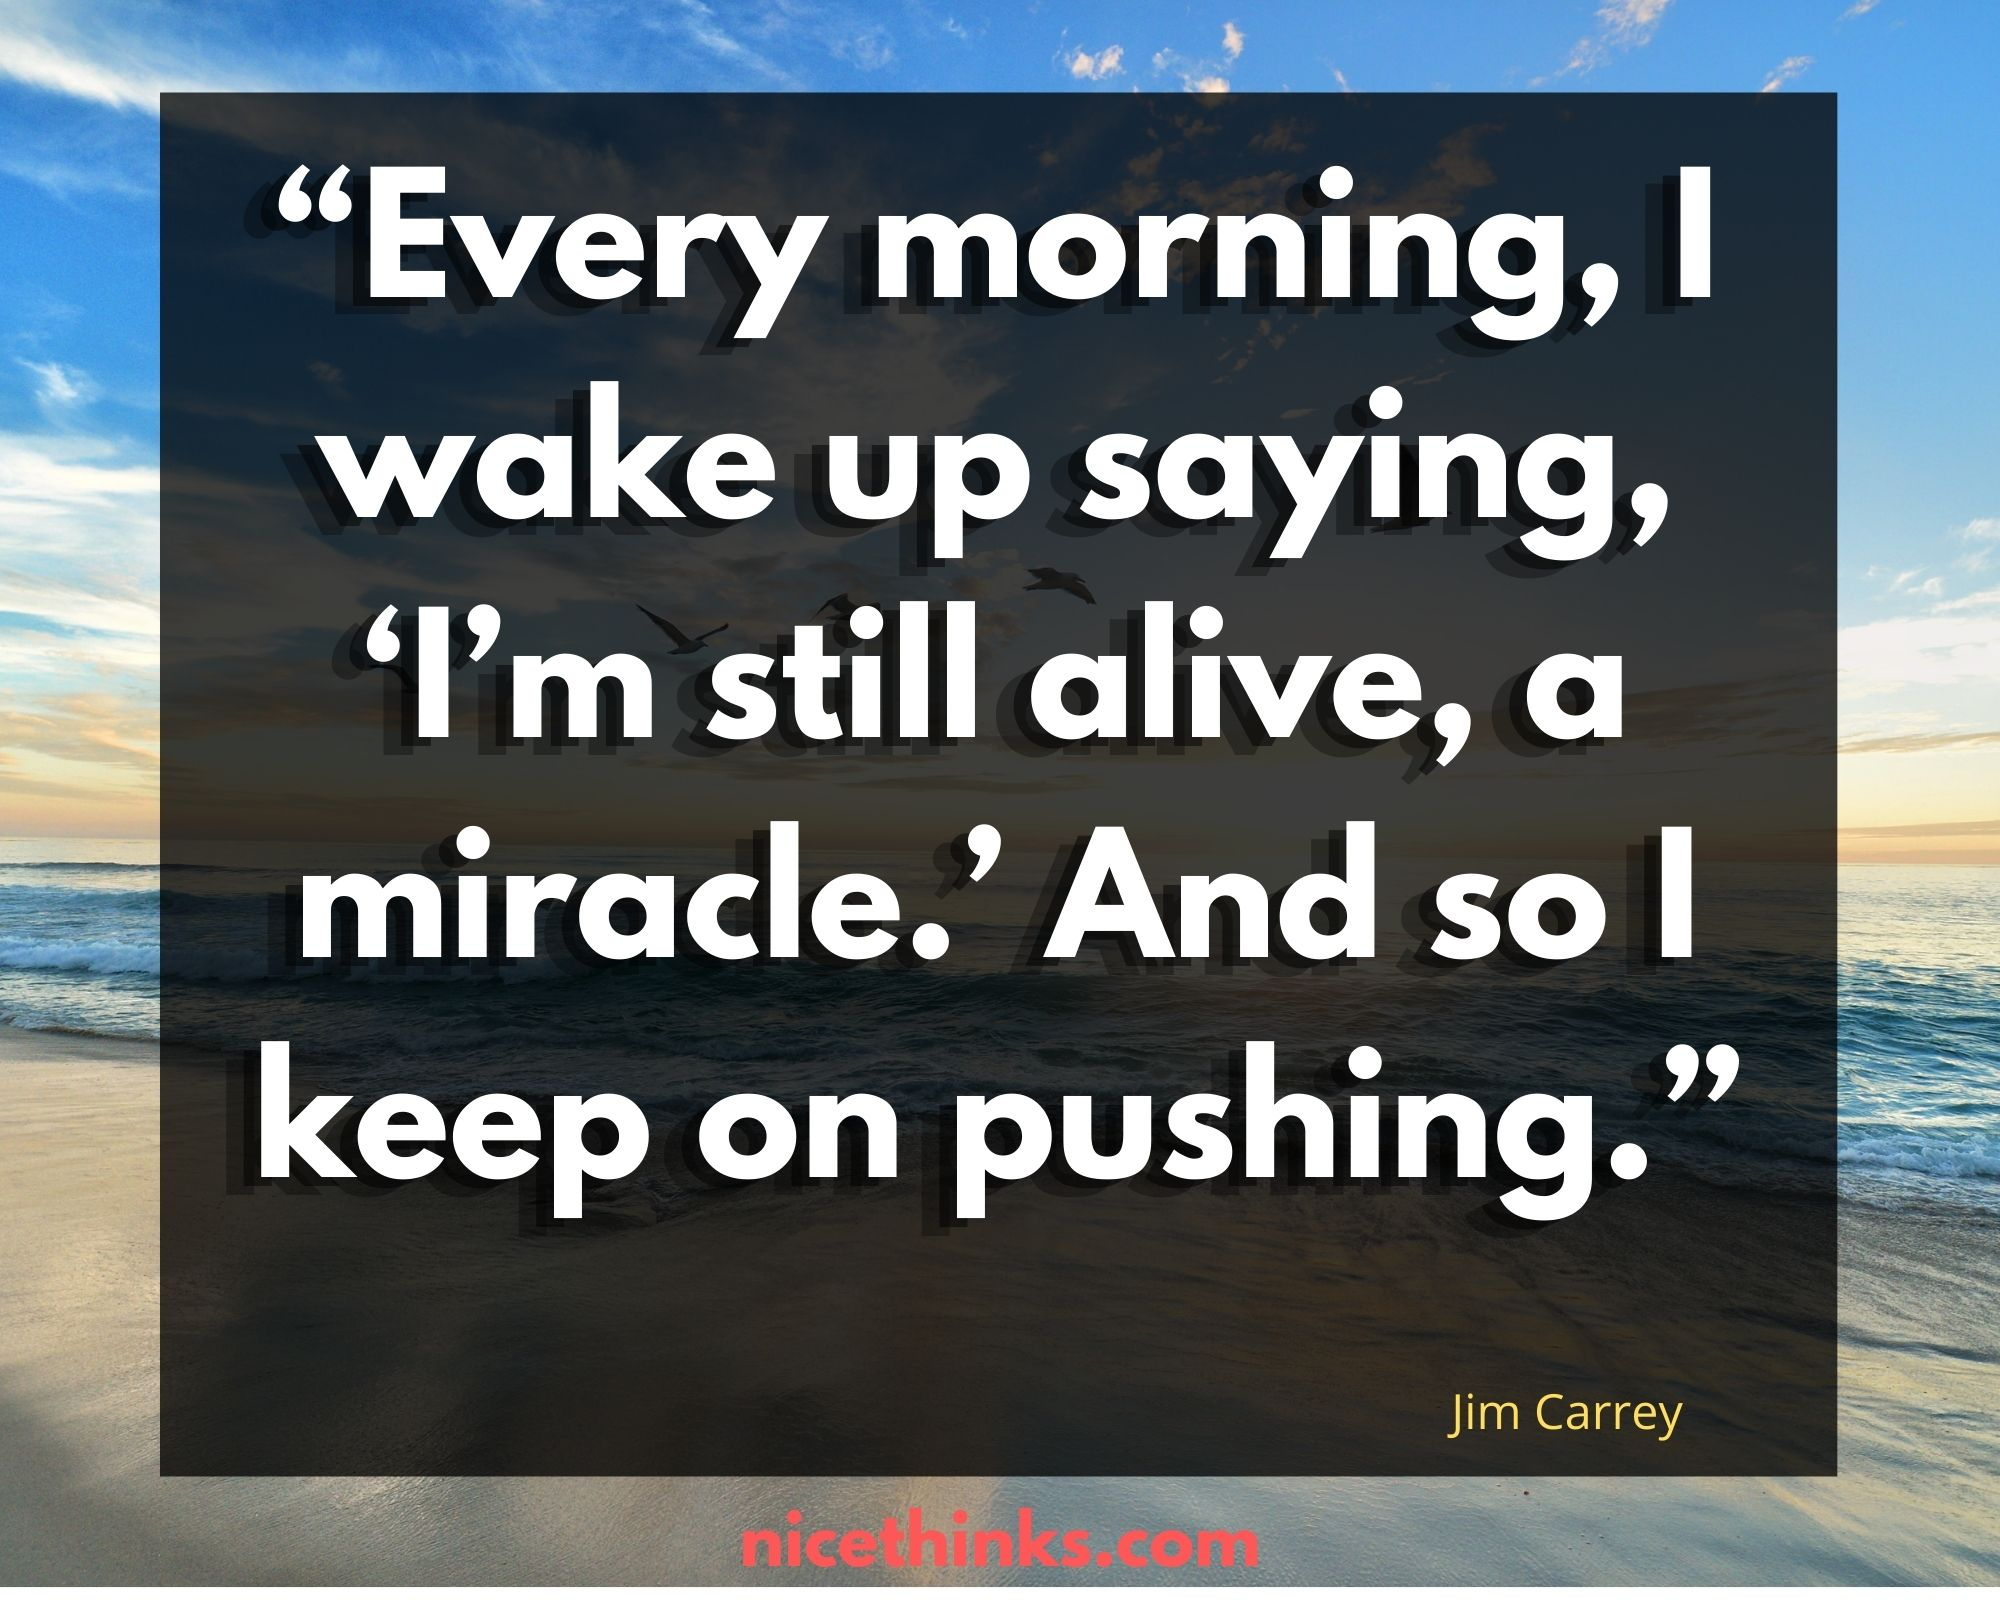 Quotes by Jim Carrey